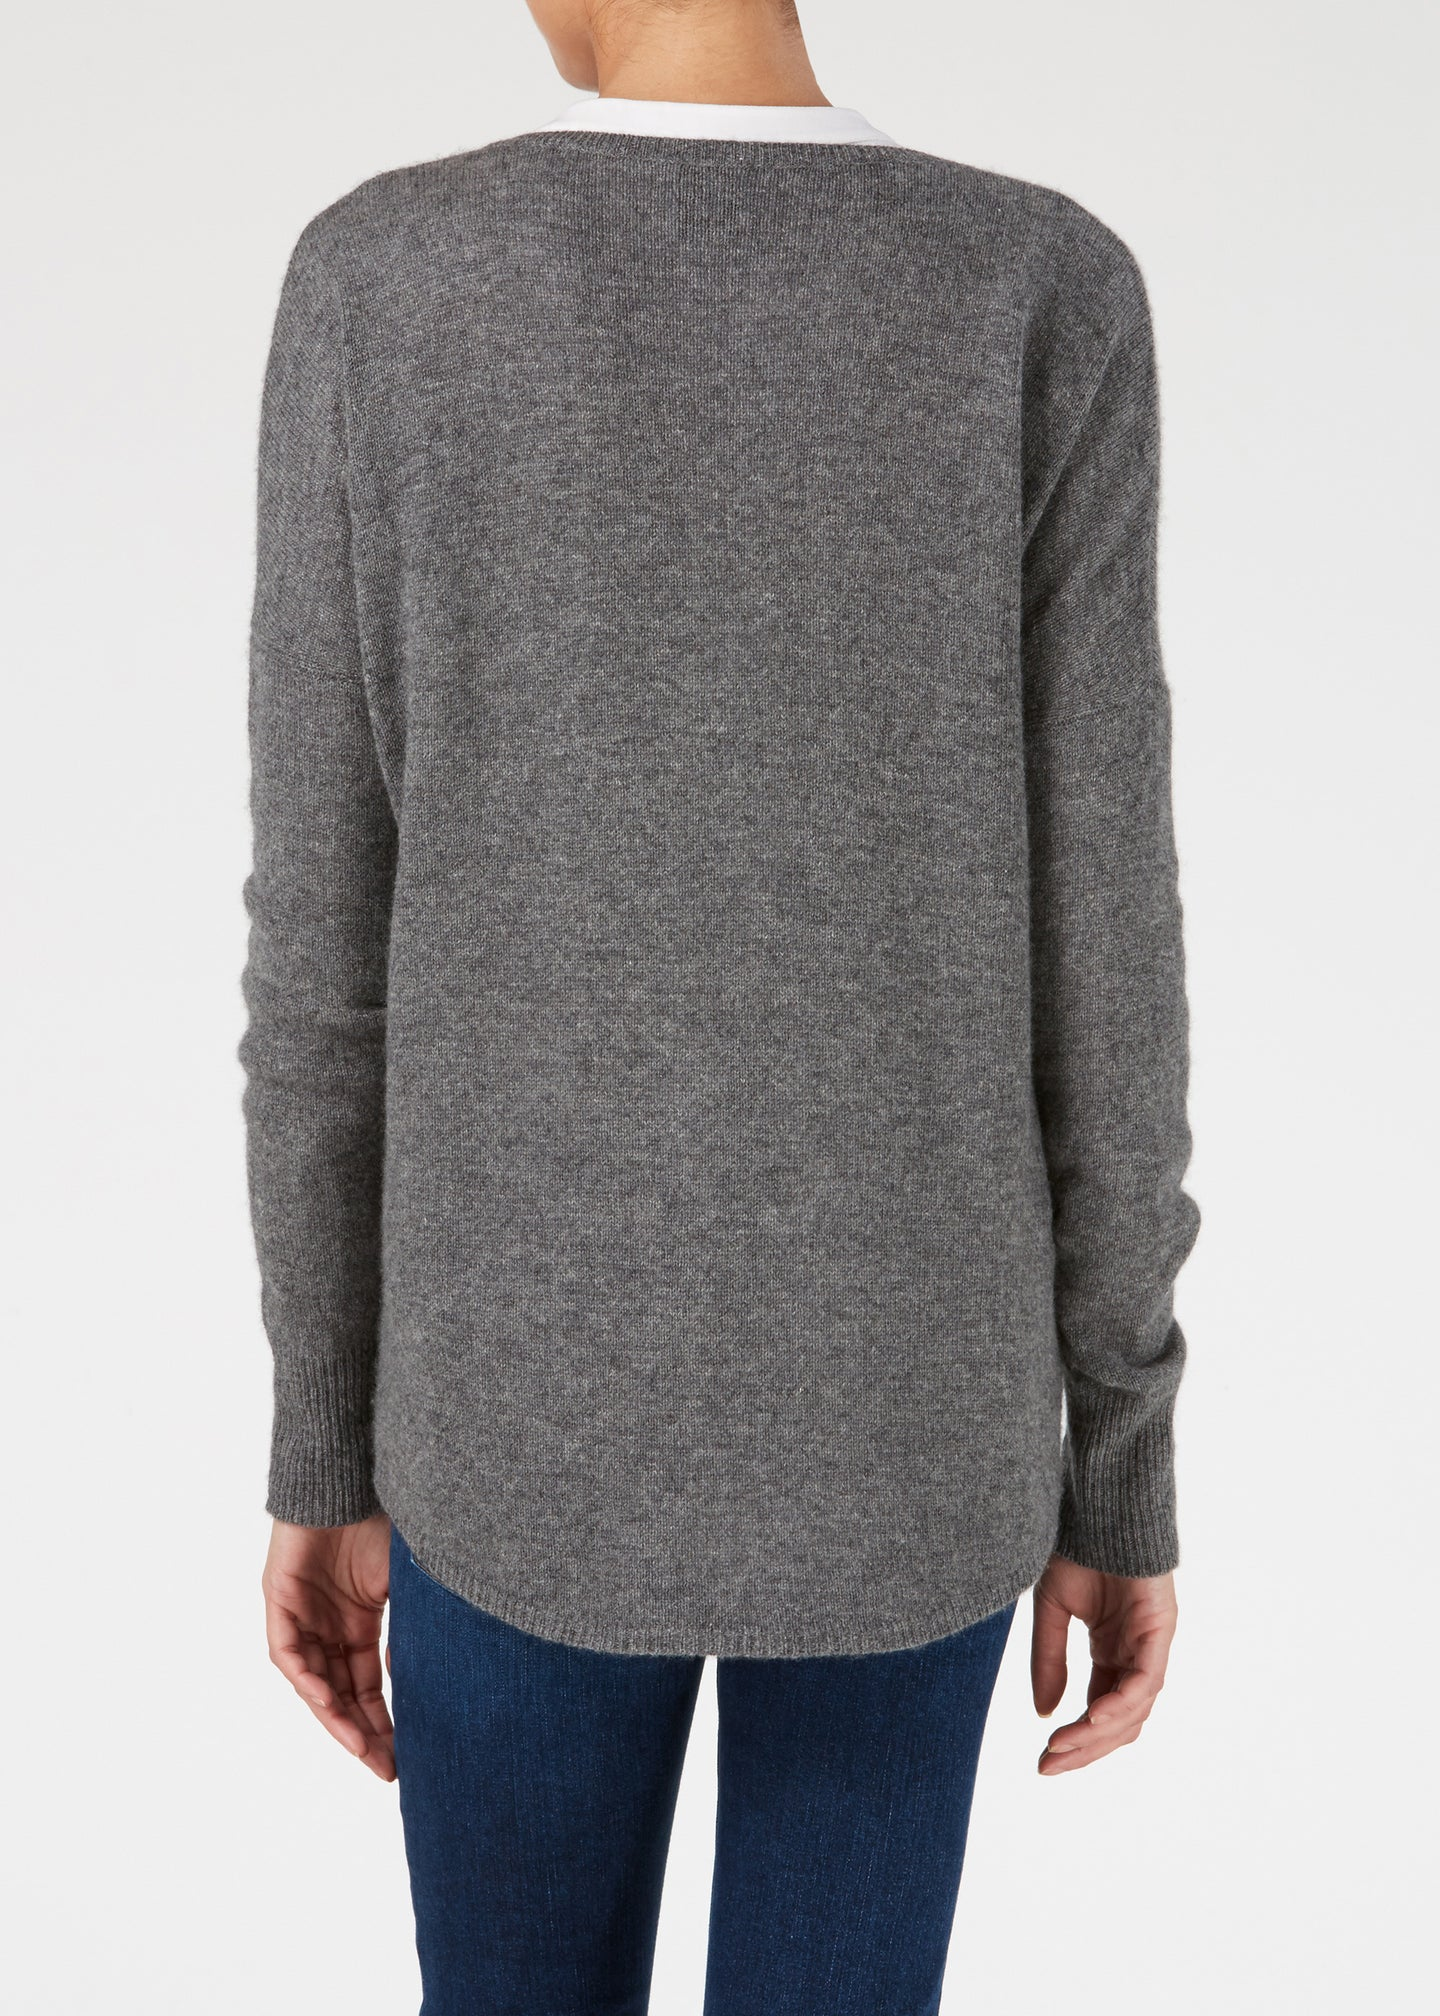 Lauren V-Neck Cashmere Knit - Slate